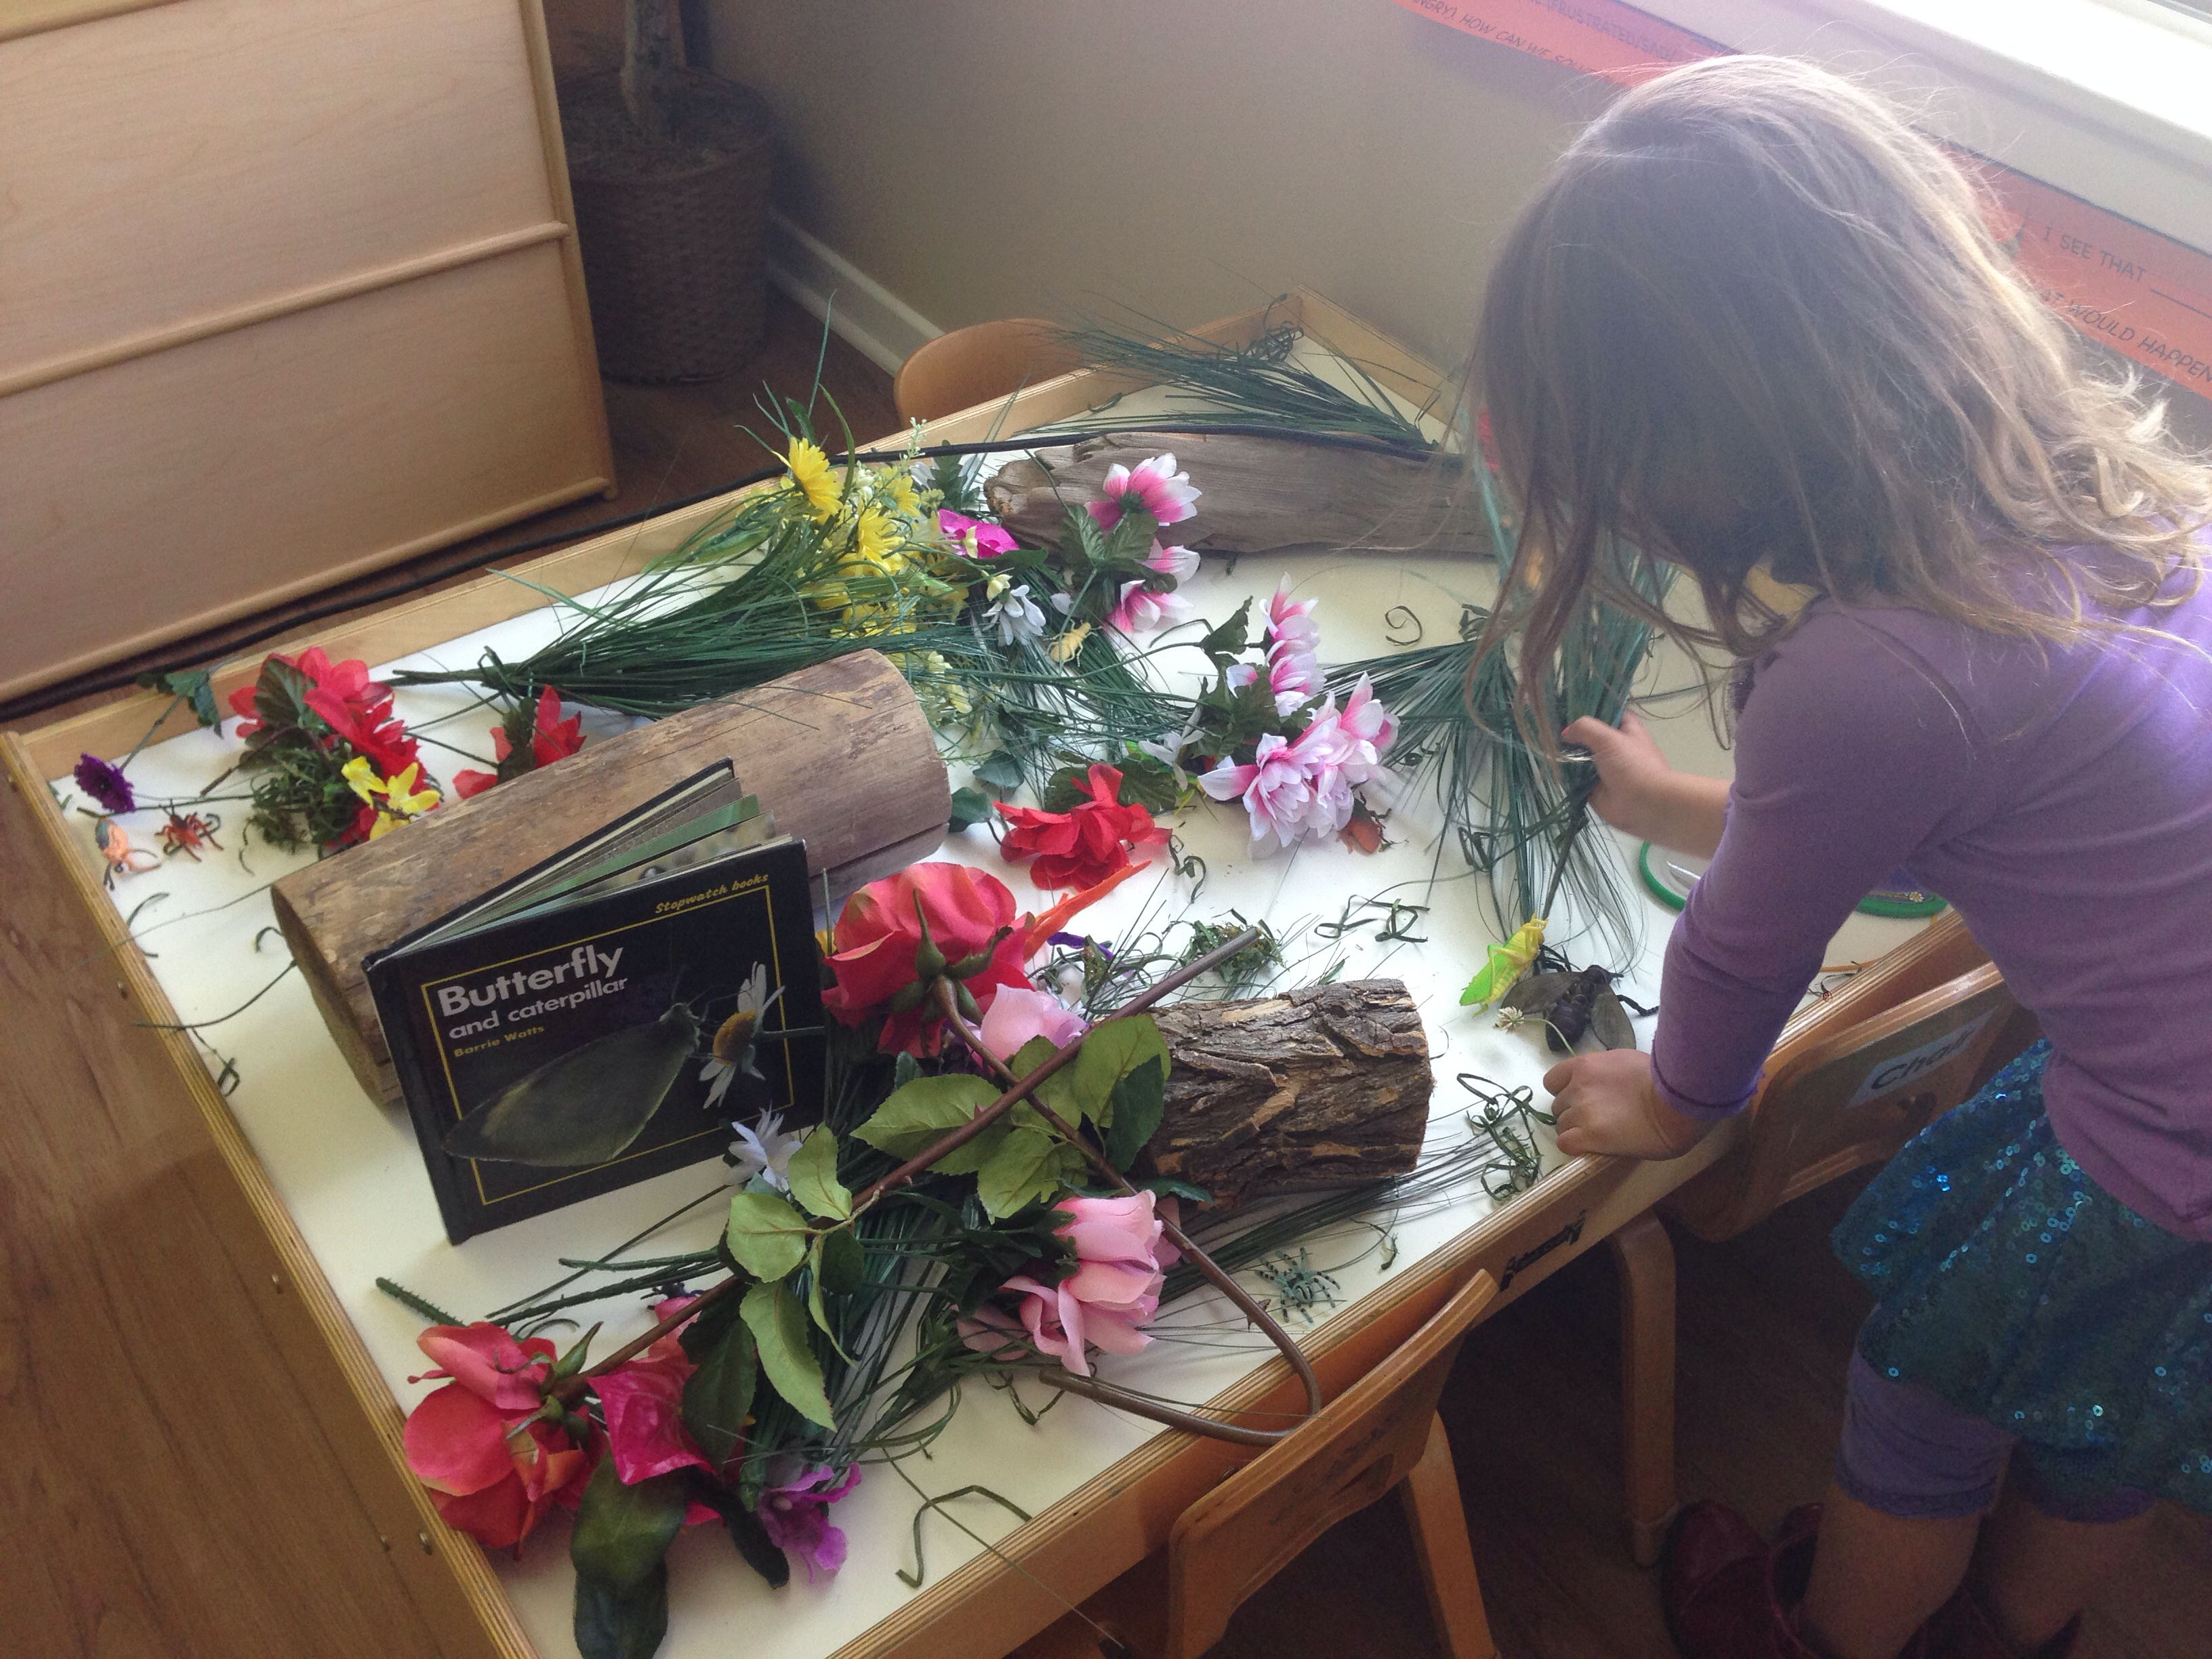 Butterfly Caterpillar Discovery Table Bright Beginnings